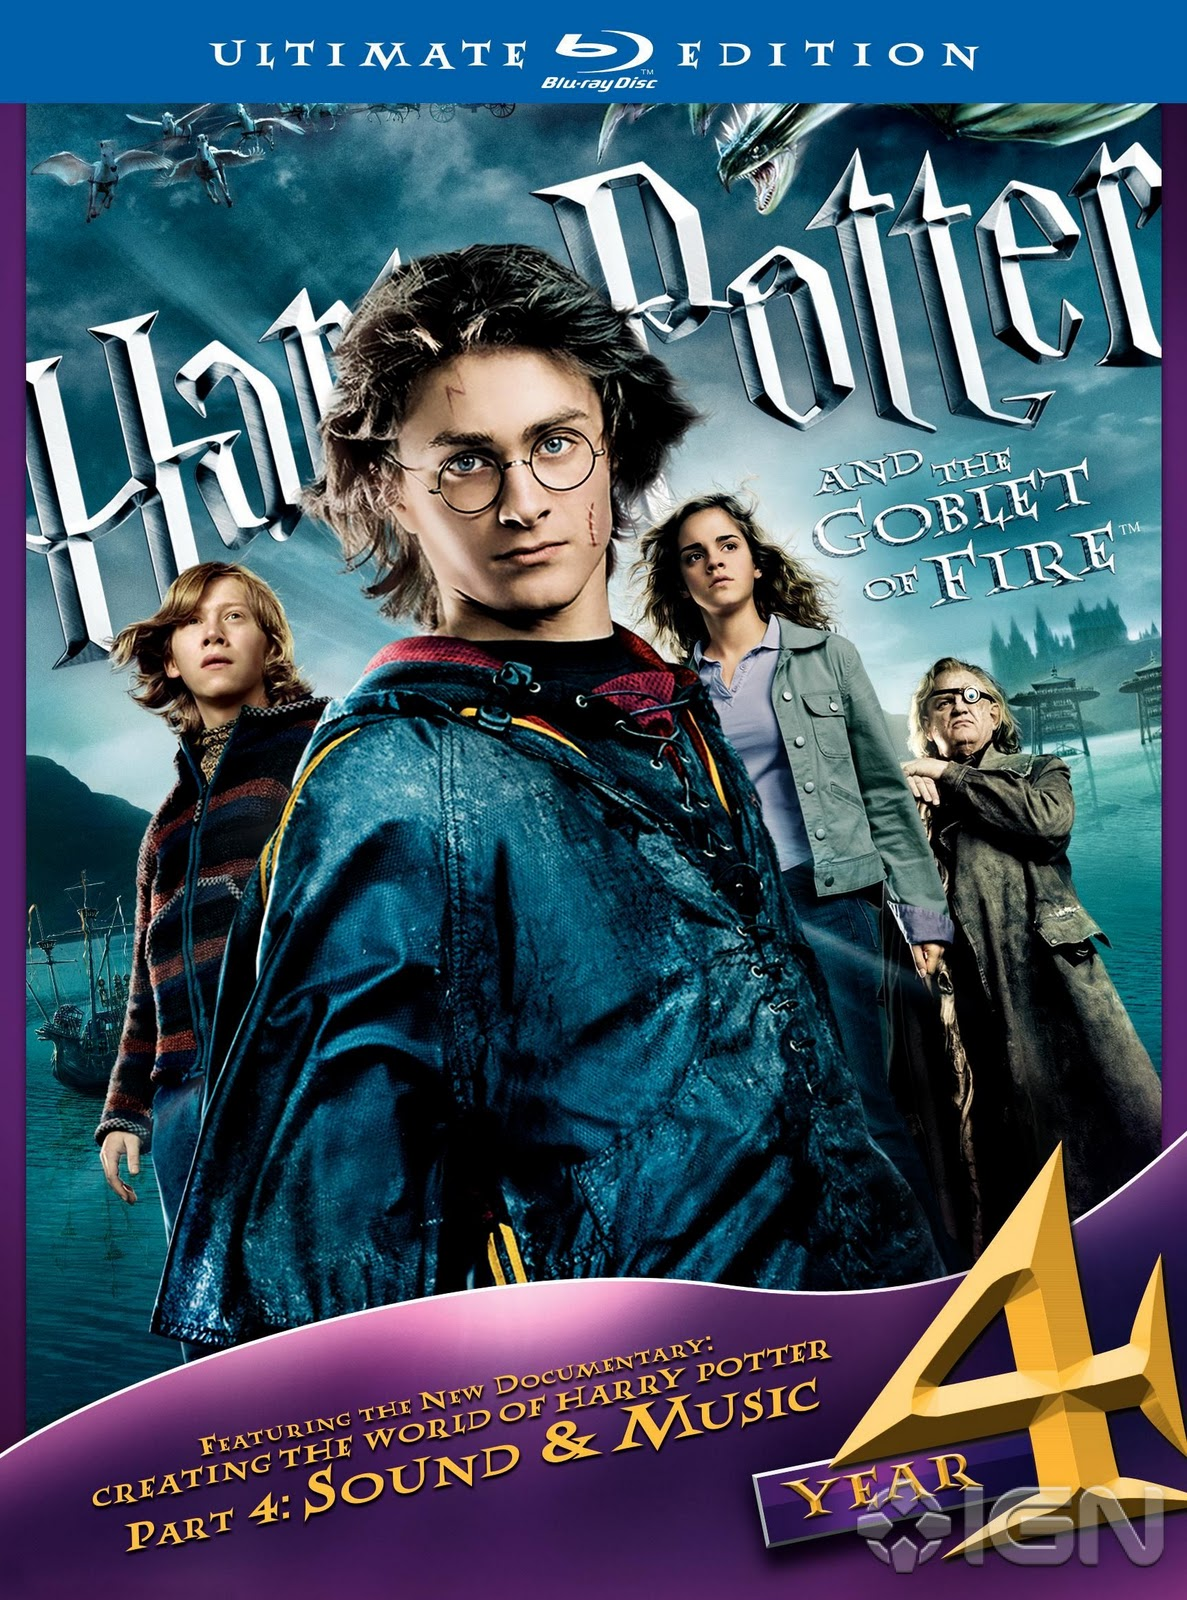 Harry Potter and the Goblet of Fire 2005 Ultimate Edition BluRay 1080p    The Goblet Of Fire 2005